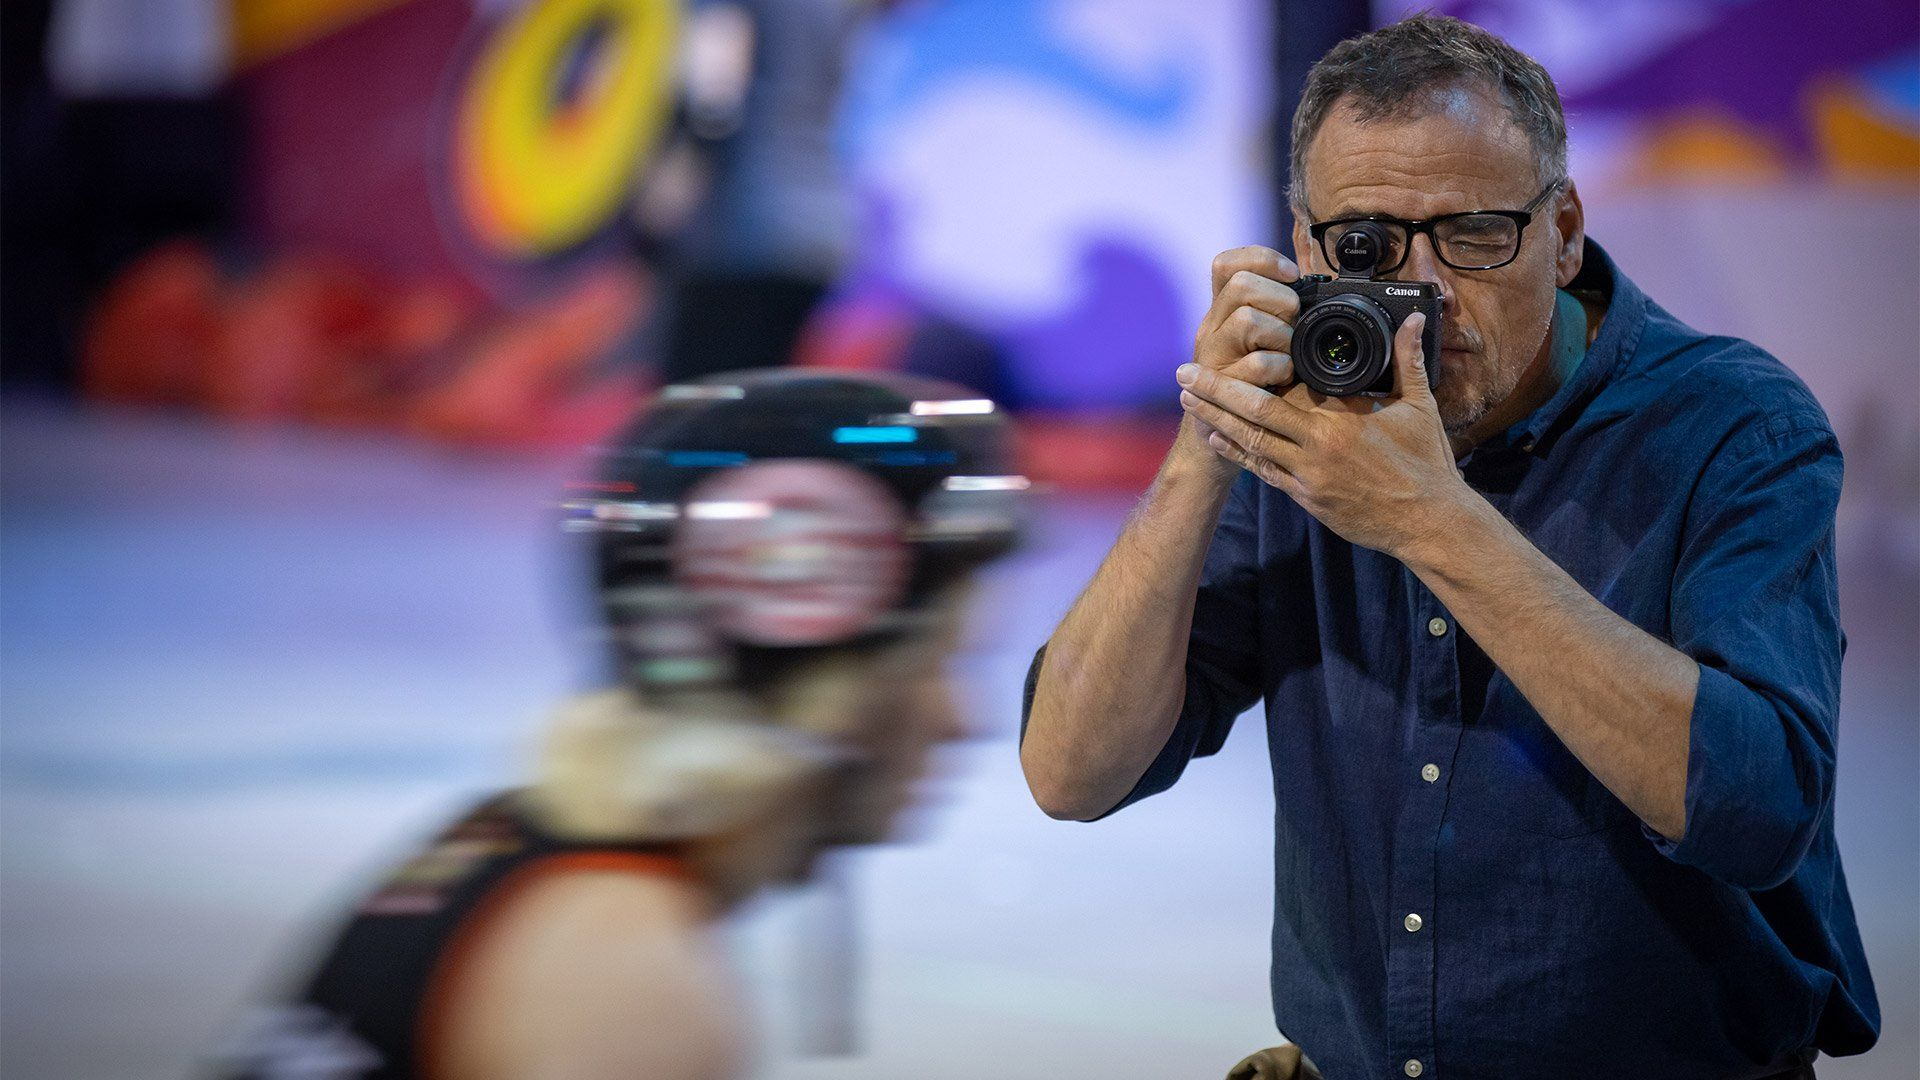 Photographer Piotr Malecki is in sharp focus as he photographs a fast-moving roller skater, who is blurred.